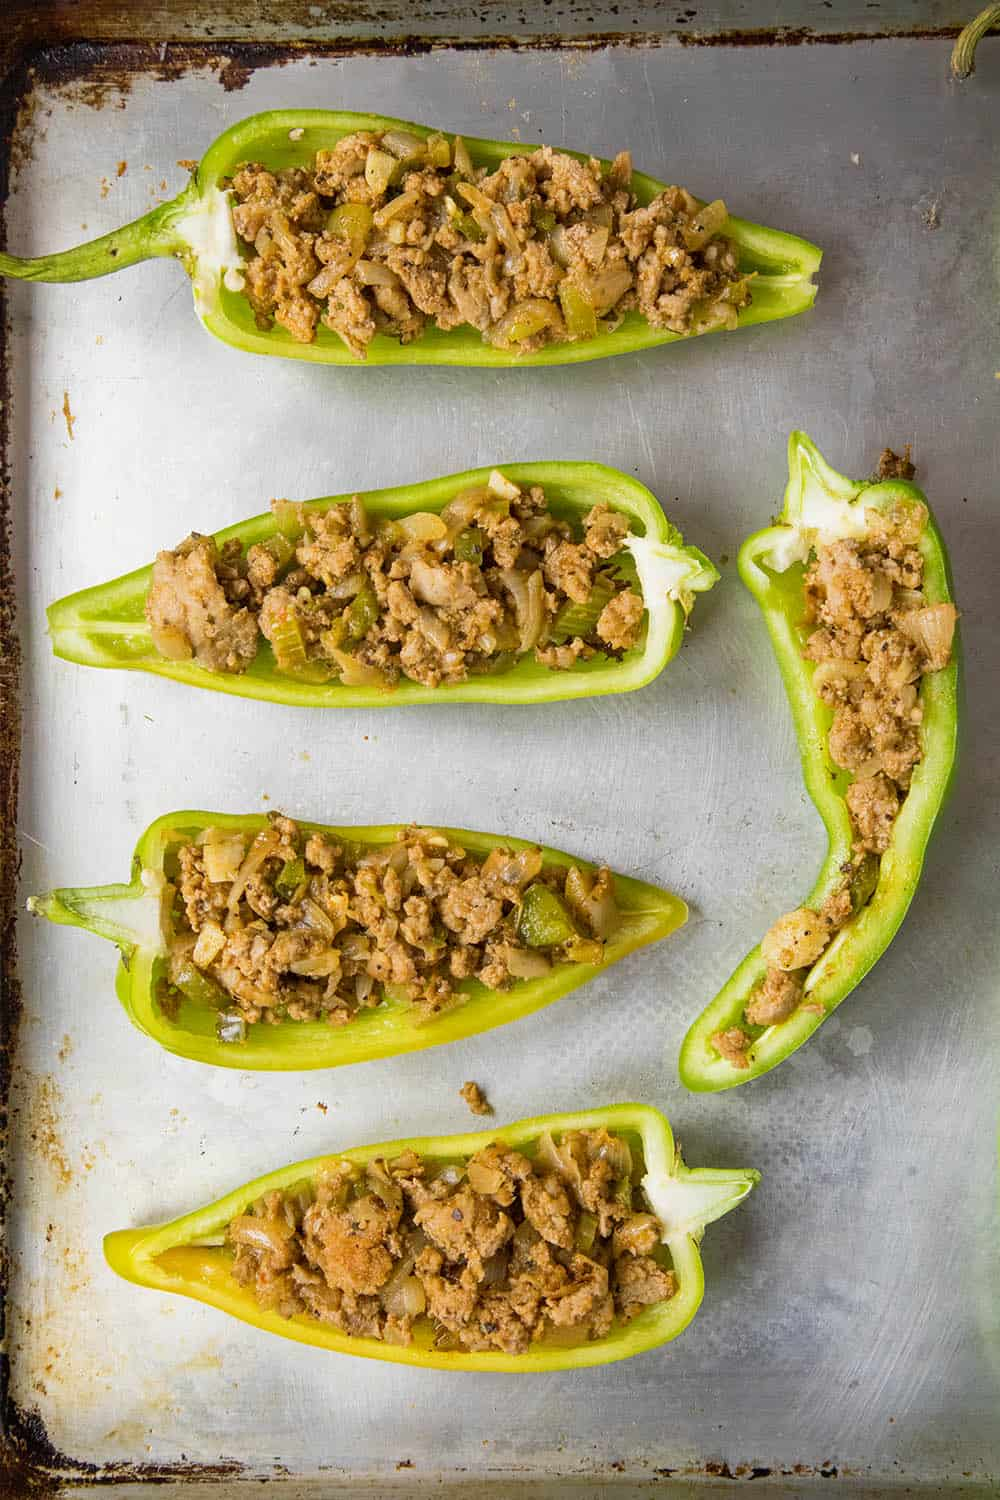 Anaheim peppers stuffed with ground turkey